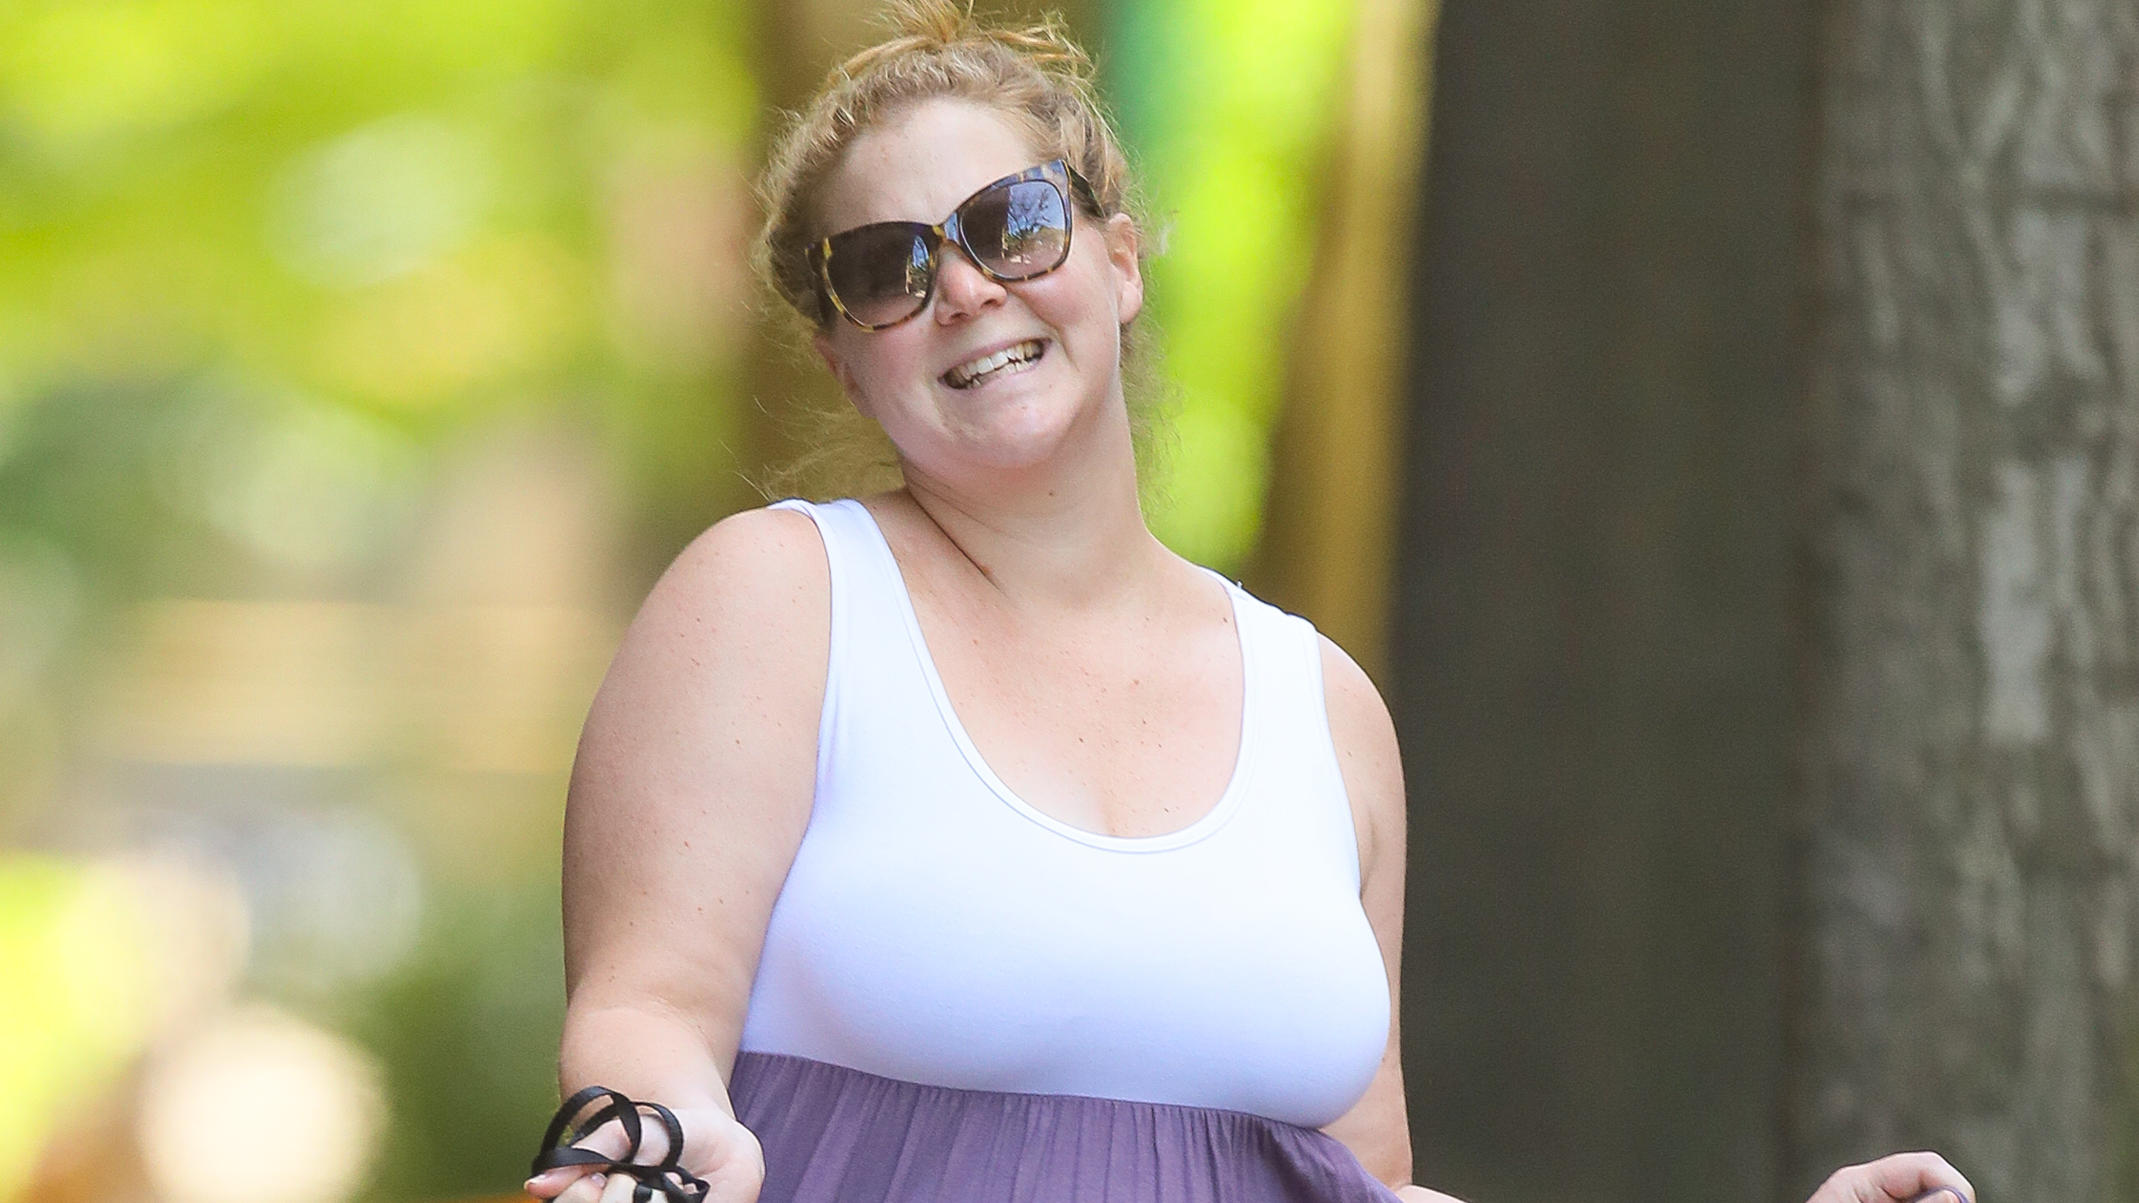 Amy Schumer is all smiling while dancing as walking her puppy in New York CityPictured: Amy SchumerRef: SPL5091227 180519 NON-EXCLUSIVEPicture by: Felipe Ramales / SplashNews.comSplash News and PicturesLos Angeles: 310-821-2666New York: 212-619-2666L